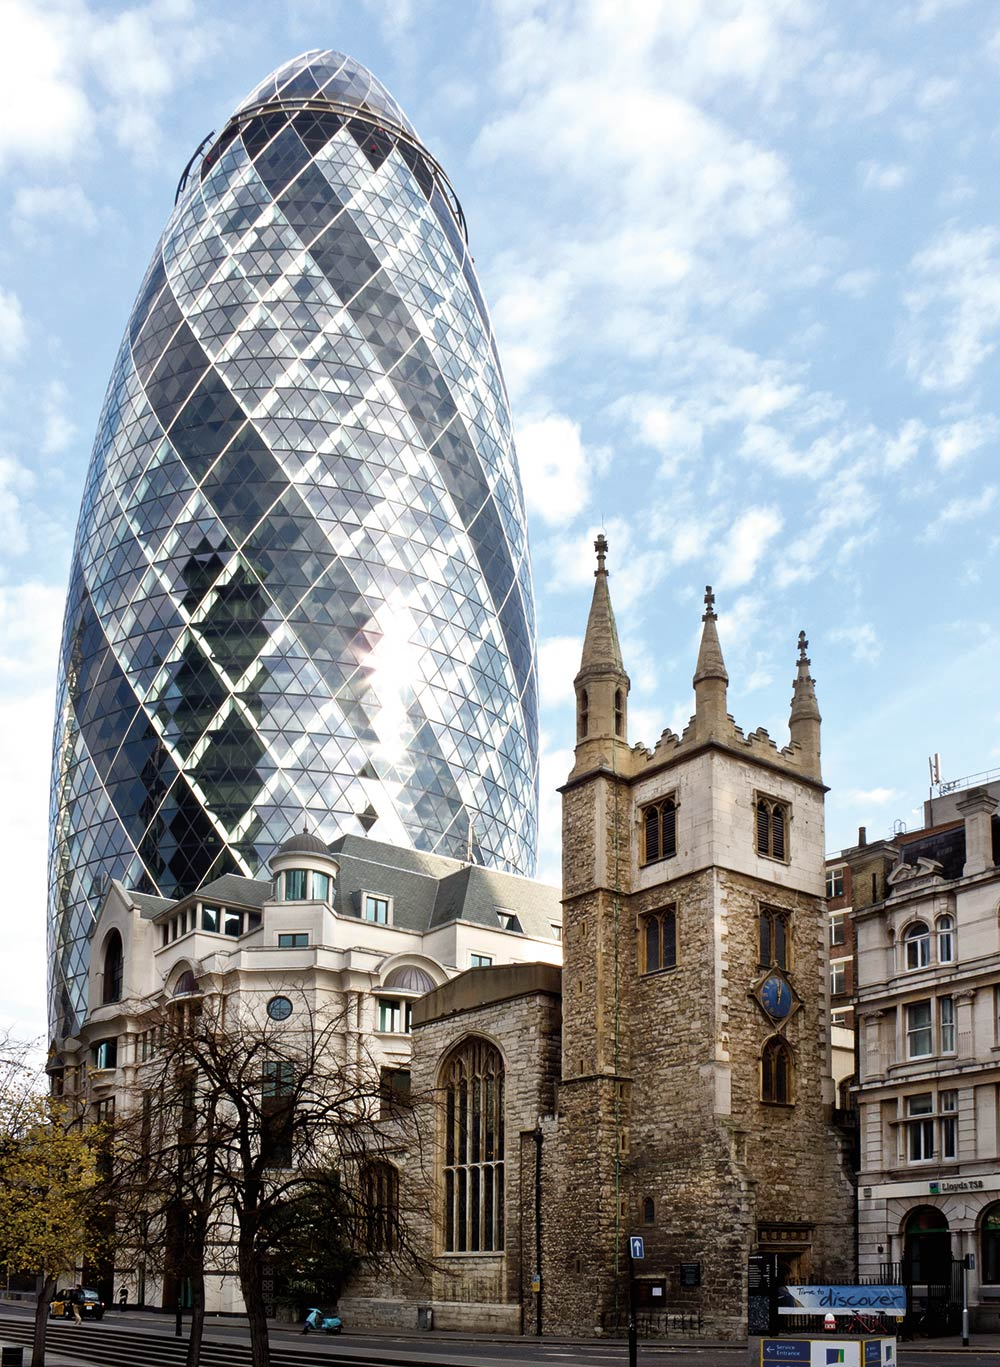 30 St Mary Axe Swiss Re Building and St Andrew Undershaft church - NORMAN FOSTER Un gran ícono de la arquitectura